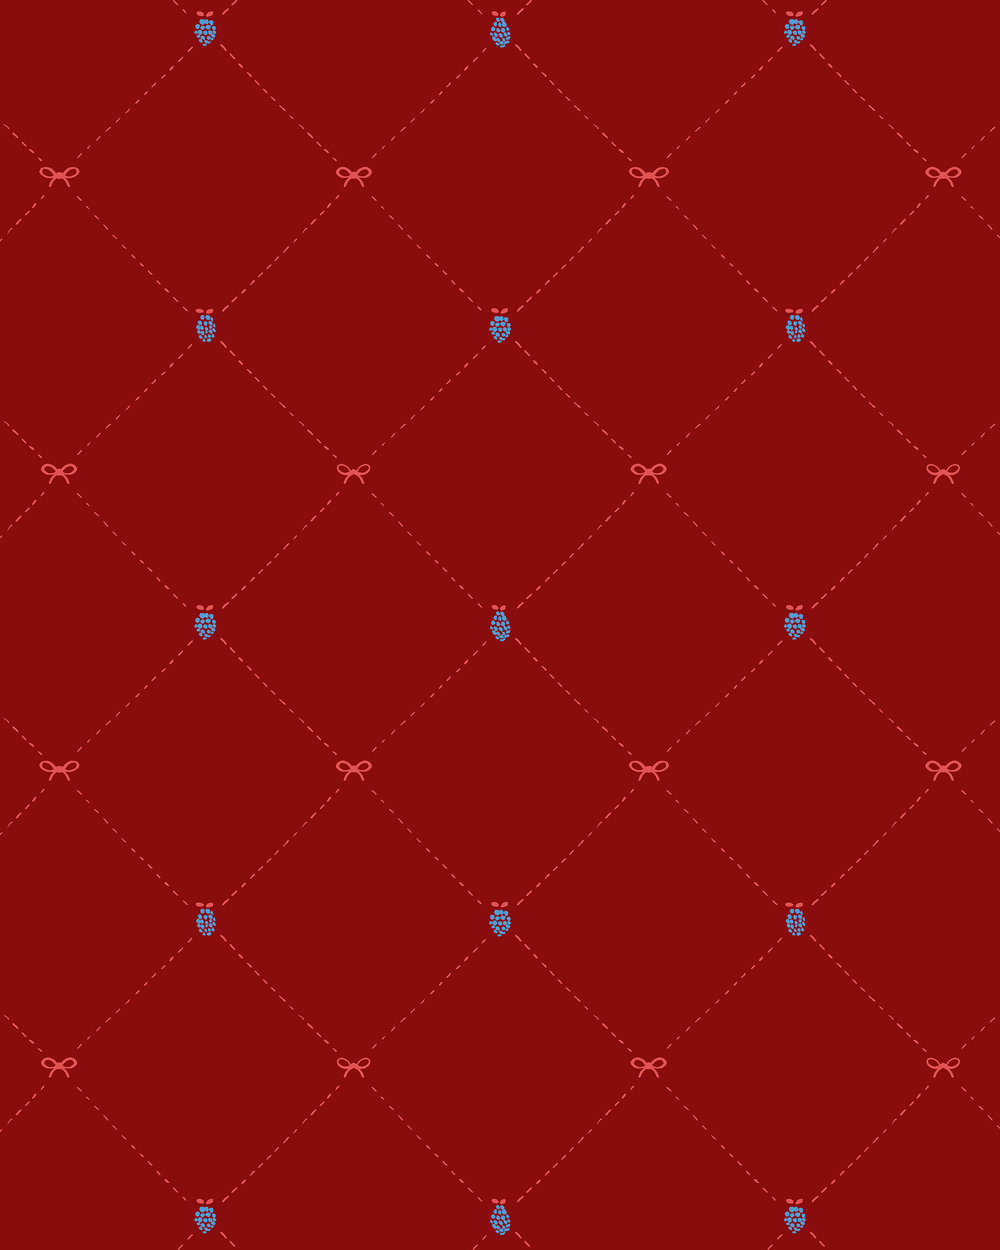 Berries and Bows Quilt.jpg